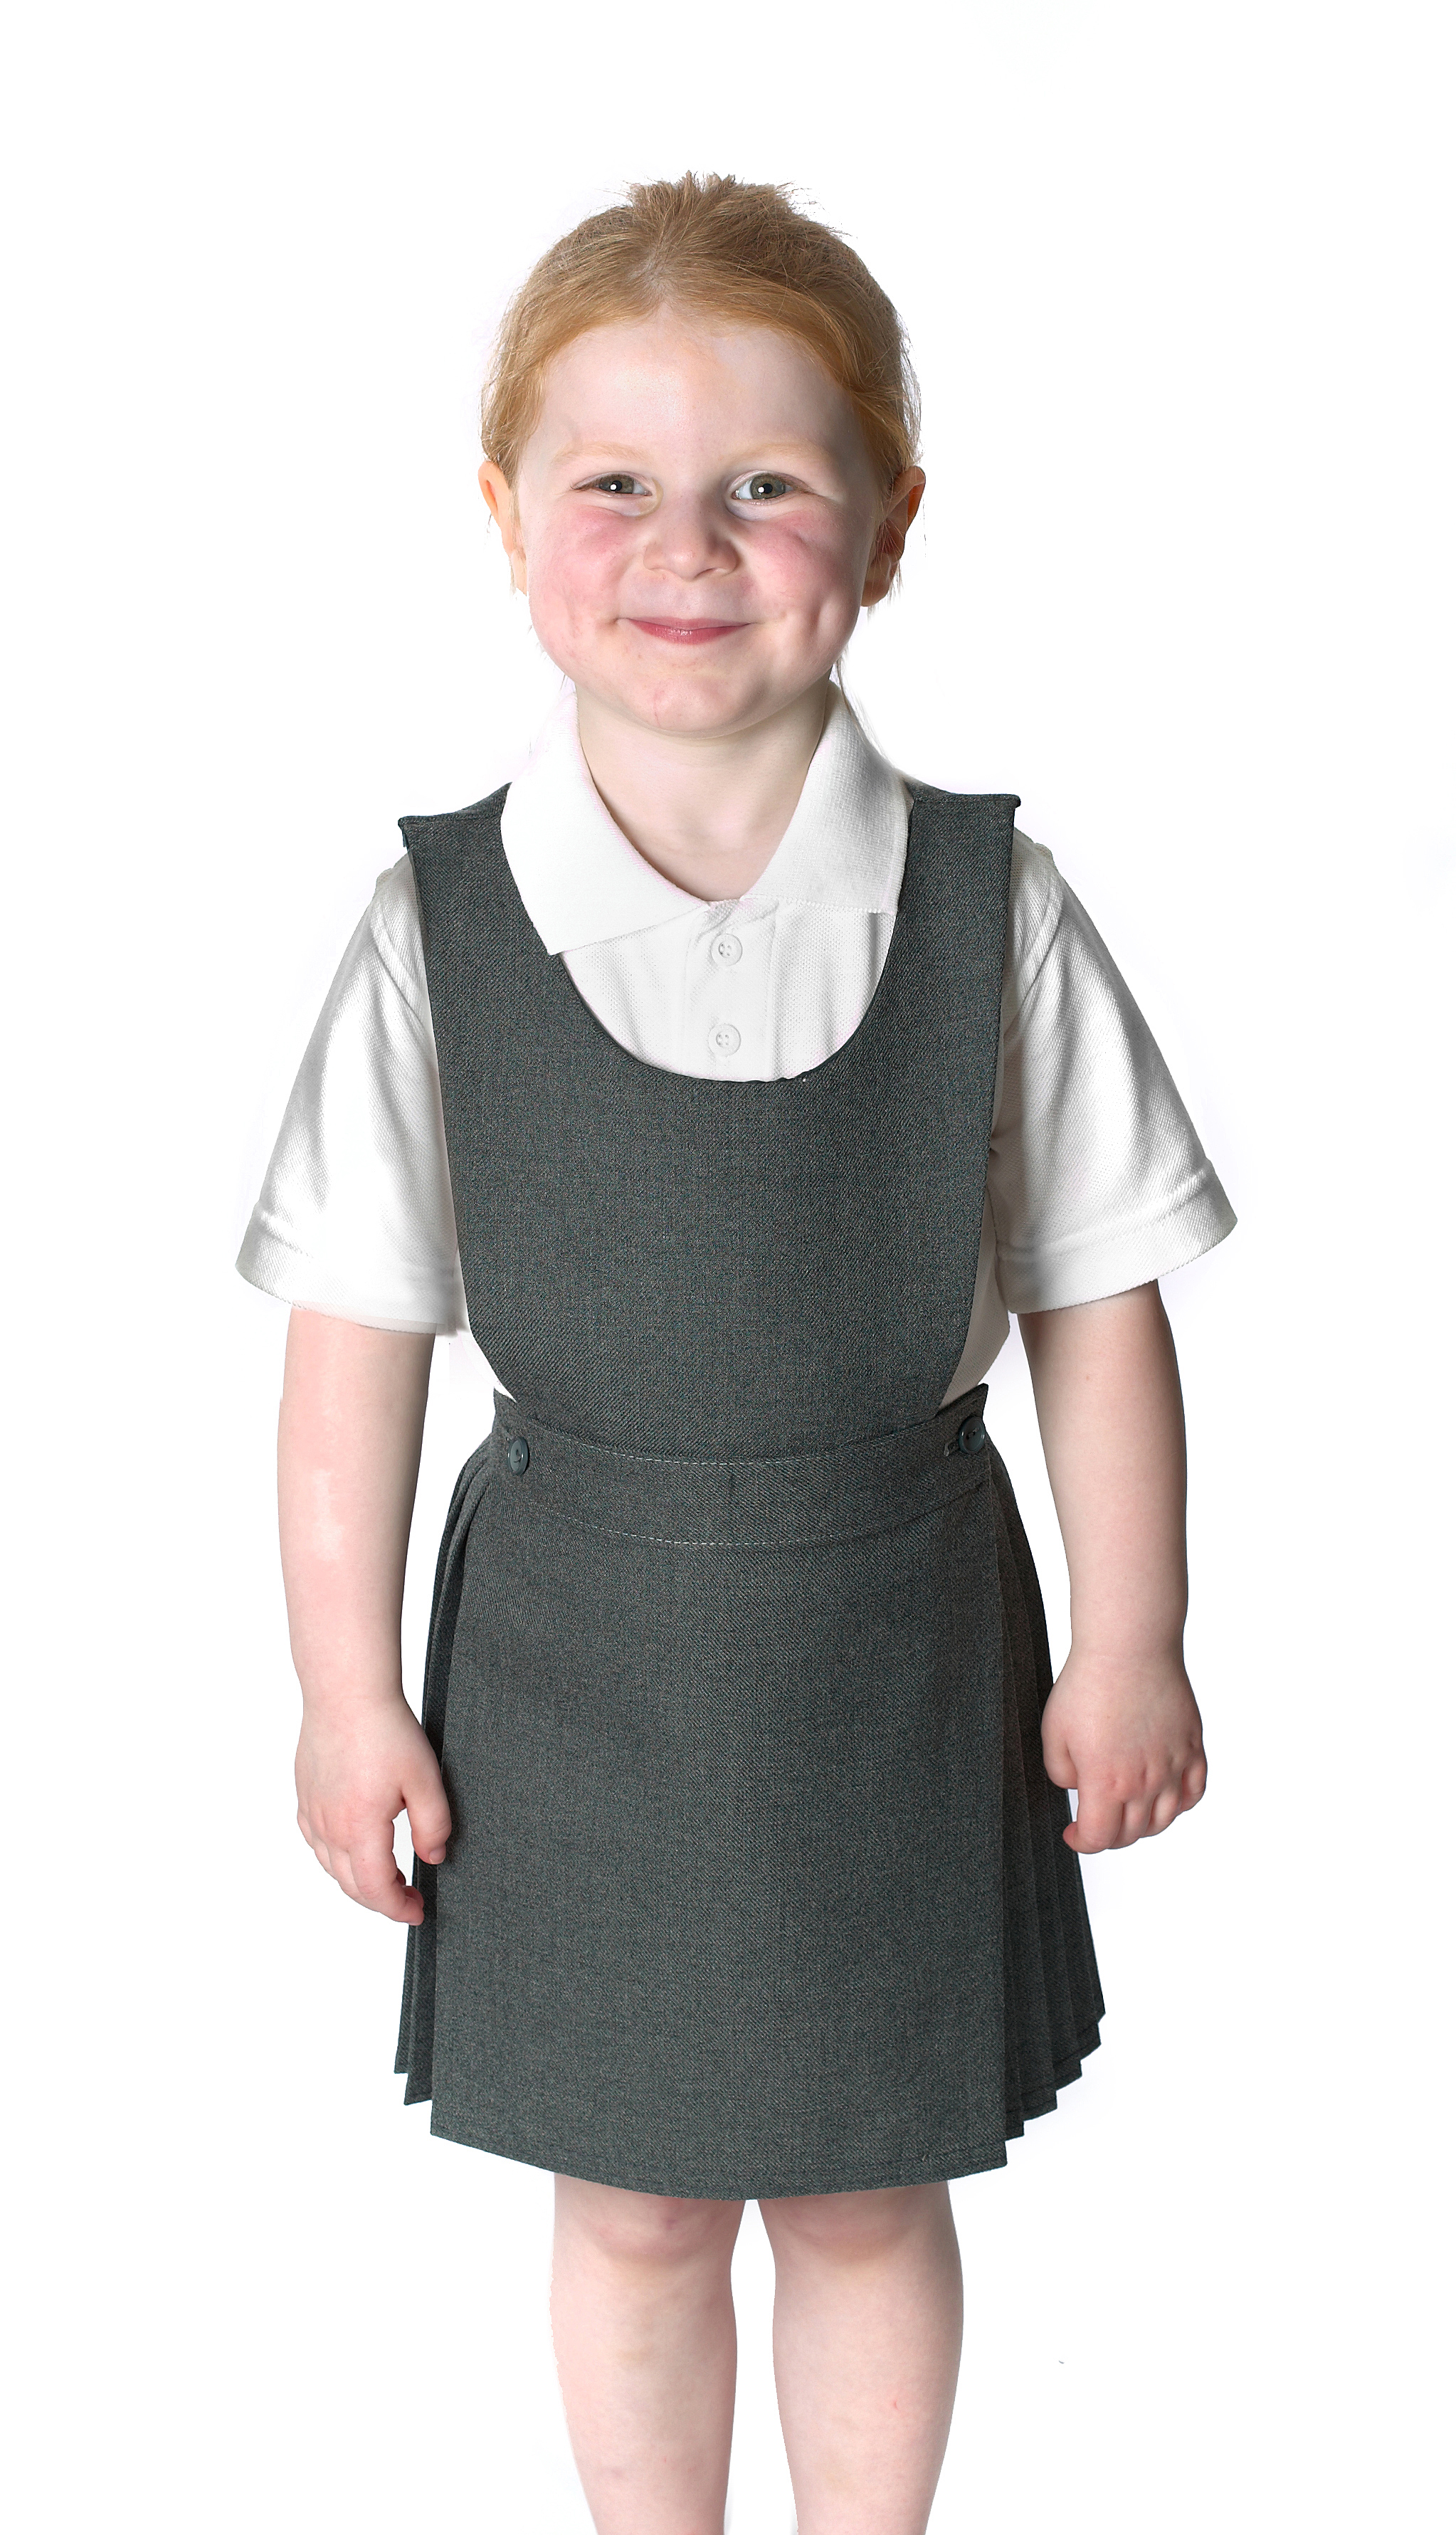 Make Justice your one-stop-shop for girls' school uniforms. Shop our selection of uniform styles that are functional & match her style. clothes. tops fashion tops sweatshirts & hoodies graphic tees basic tops sweaters & cardigans outerwear activewear tops bottoms collegiate & nfl sports leotards sports bras accessories school uniforms.